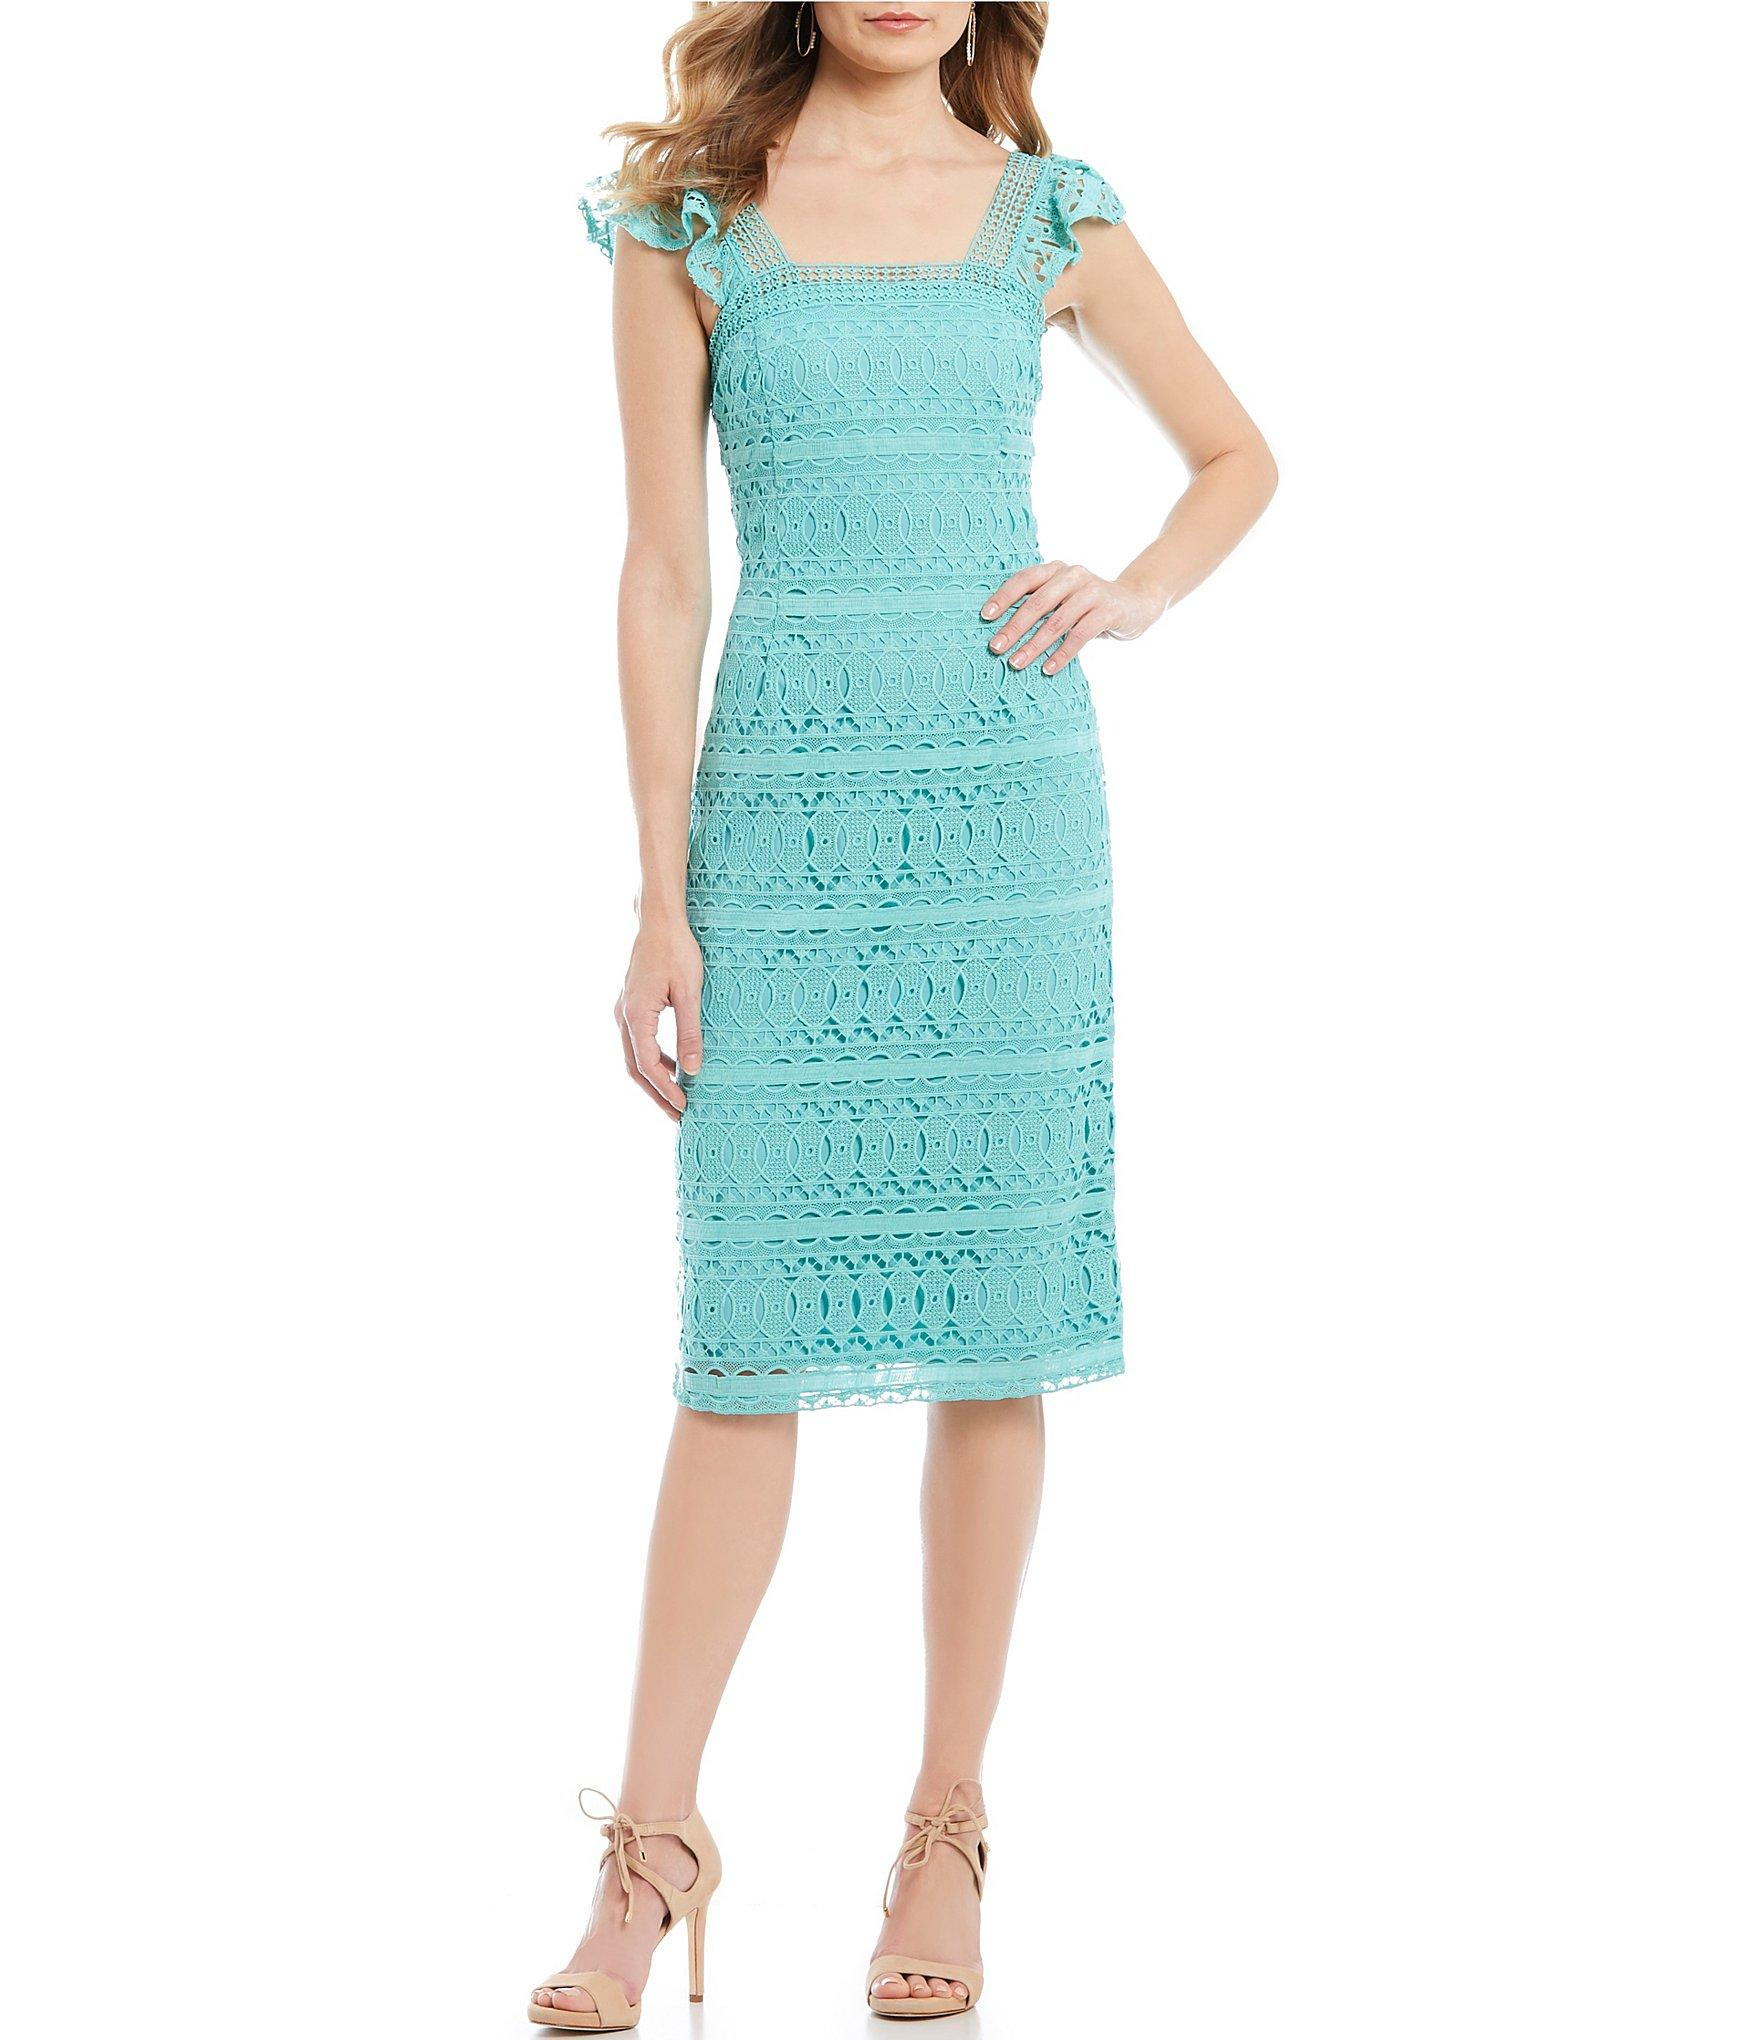 a8627453351 Antonio Melani. Women s Blue Cameron Square Neck Flutter Cap Sleeve Midi  Dress